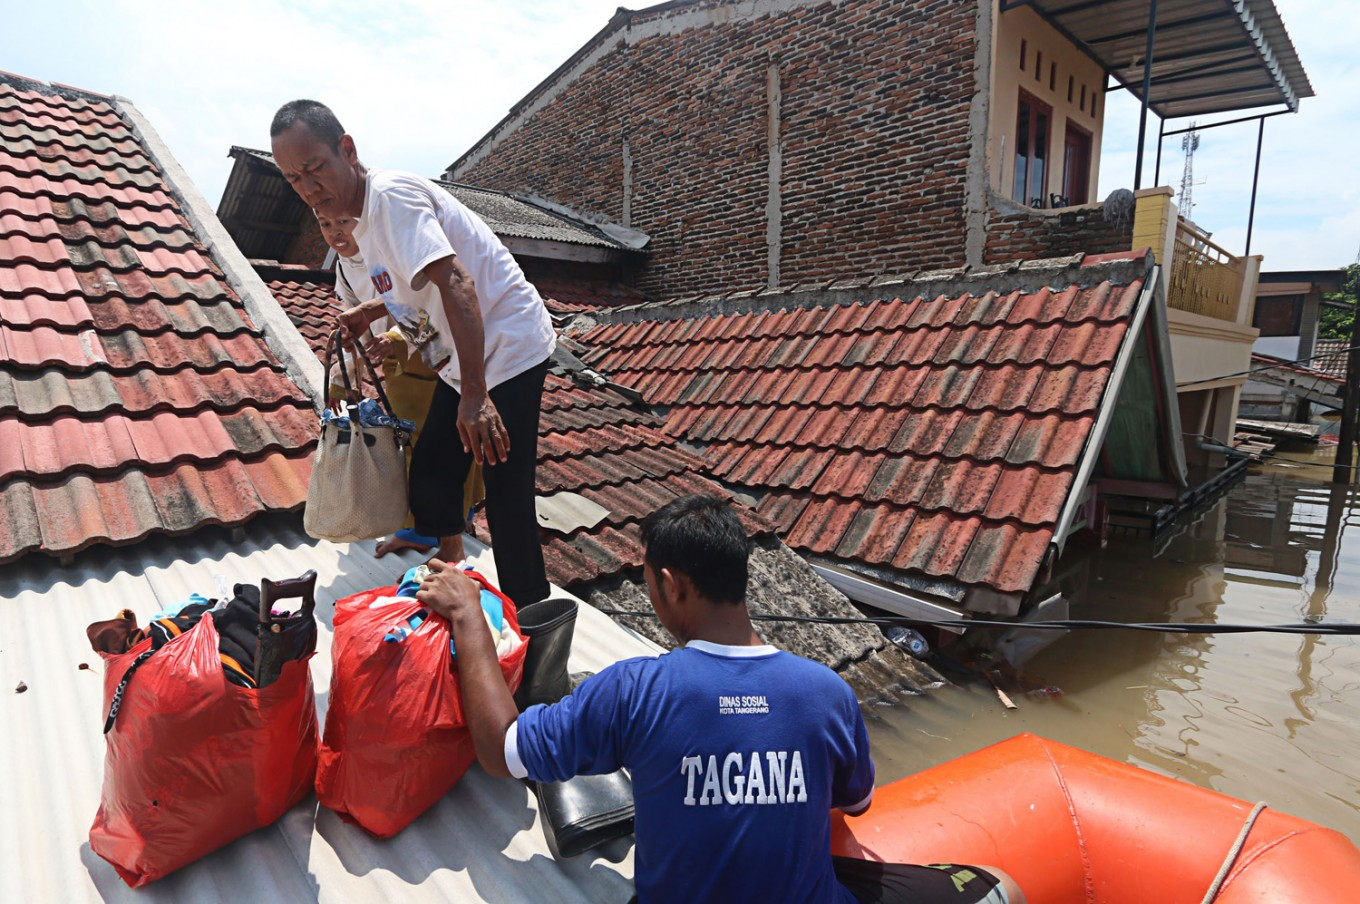 Indonesia sees highest number of natural disasters in 10 years